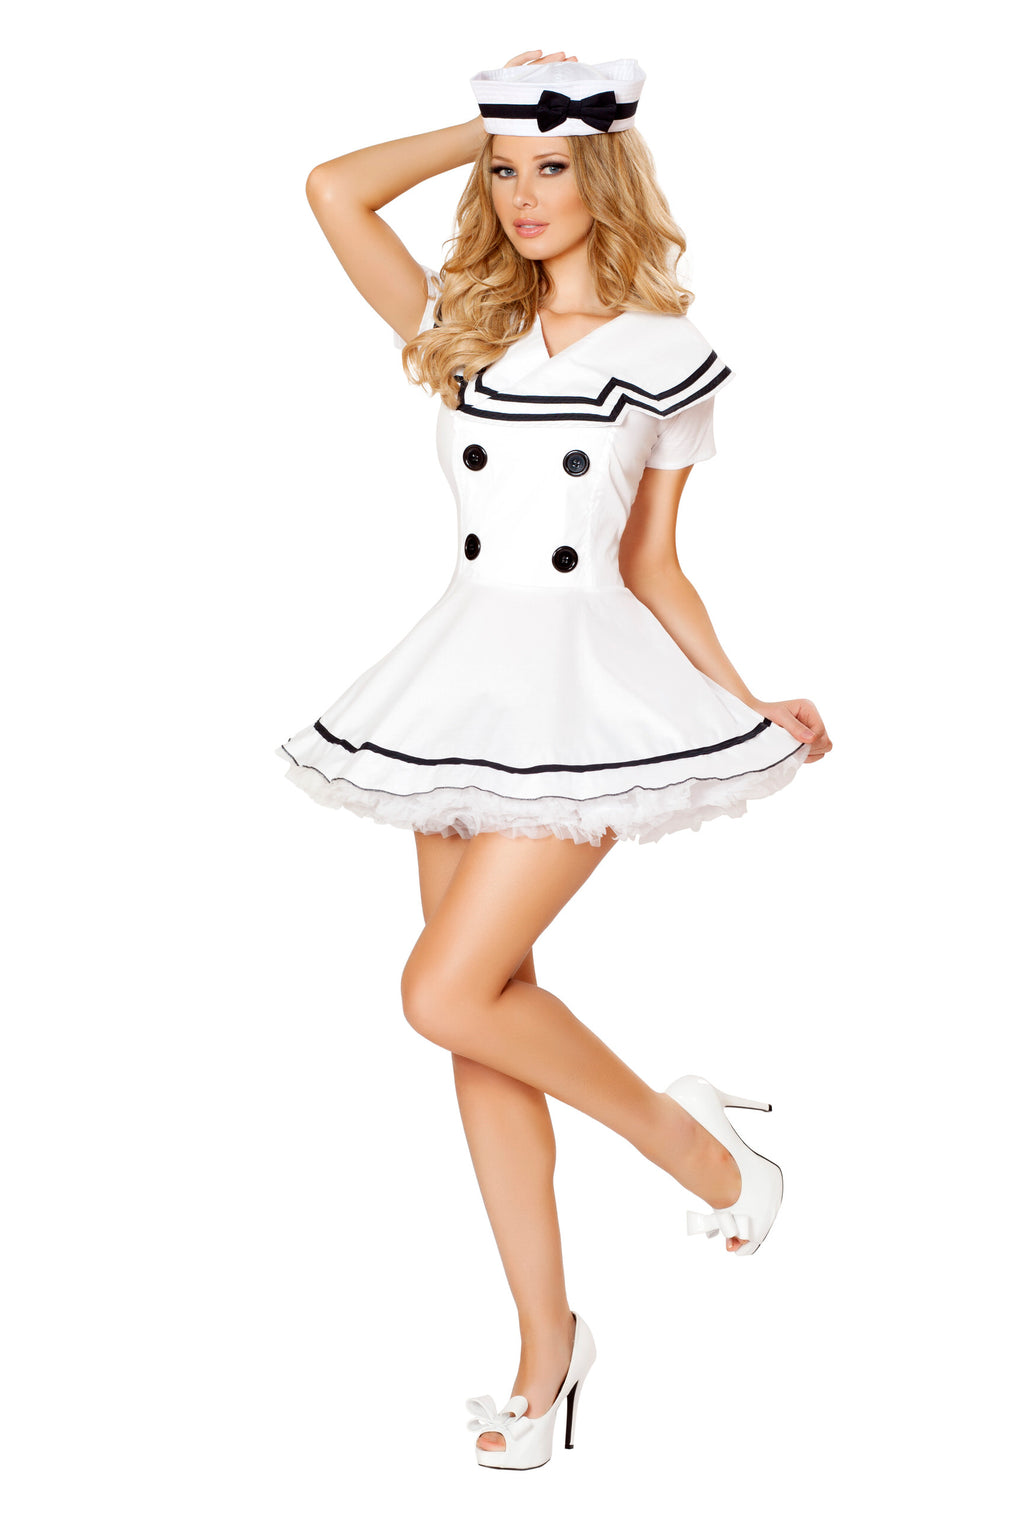 2-Piece-Sailor-Captain-White-Mini-Dress-&-Hat-Party-Costume